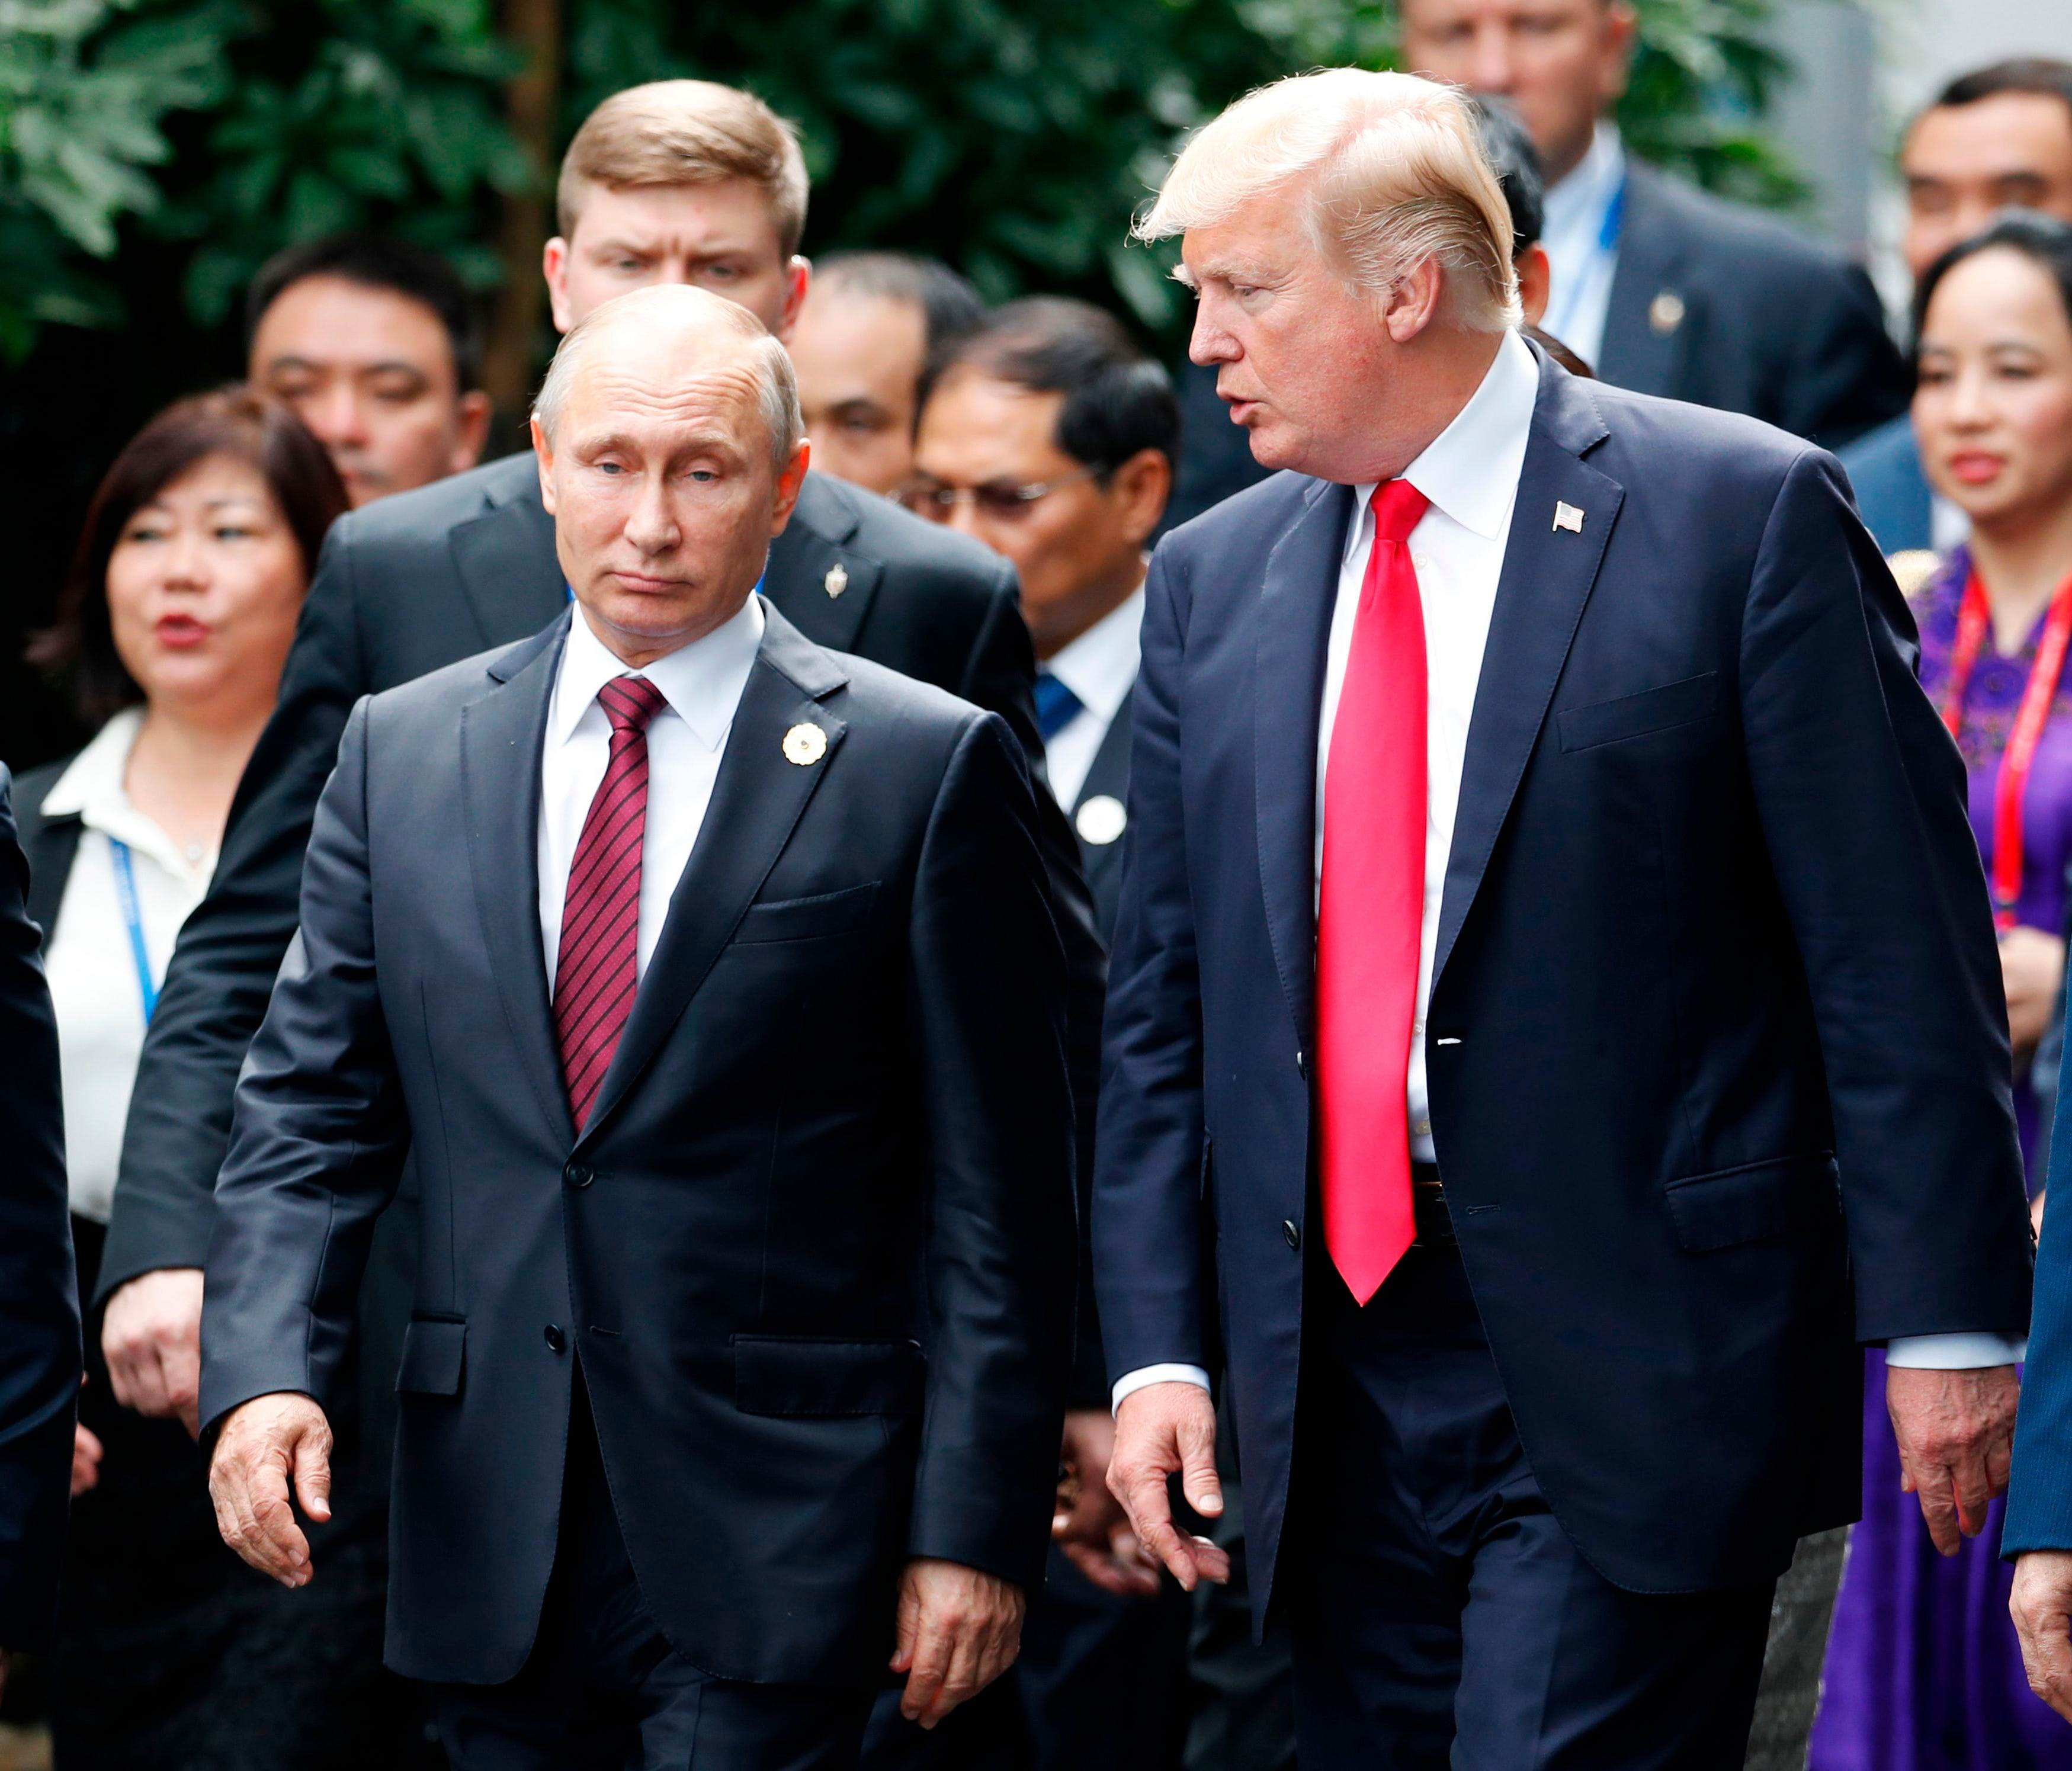 President Donald Trump and Russian President Vladimir Putin during the Asia-Pacific Economic Cooperation leaders' summit.